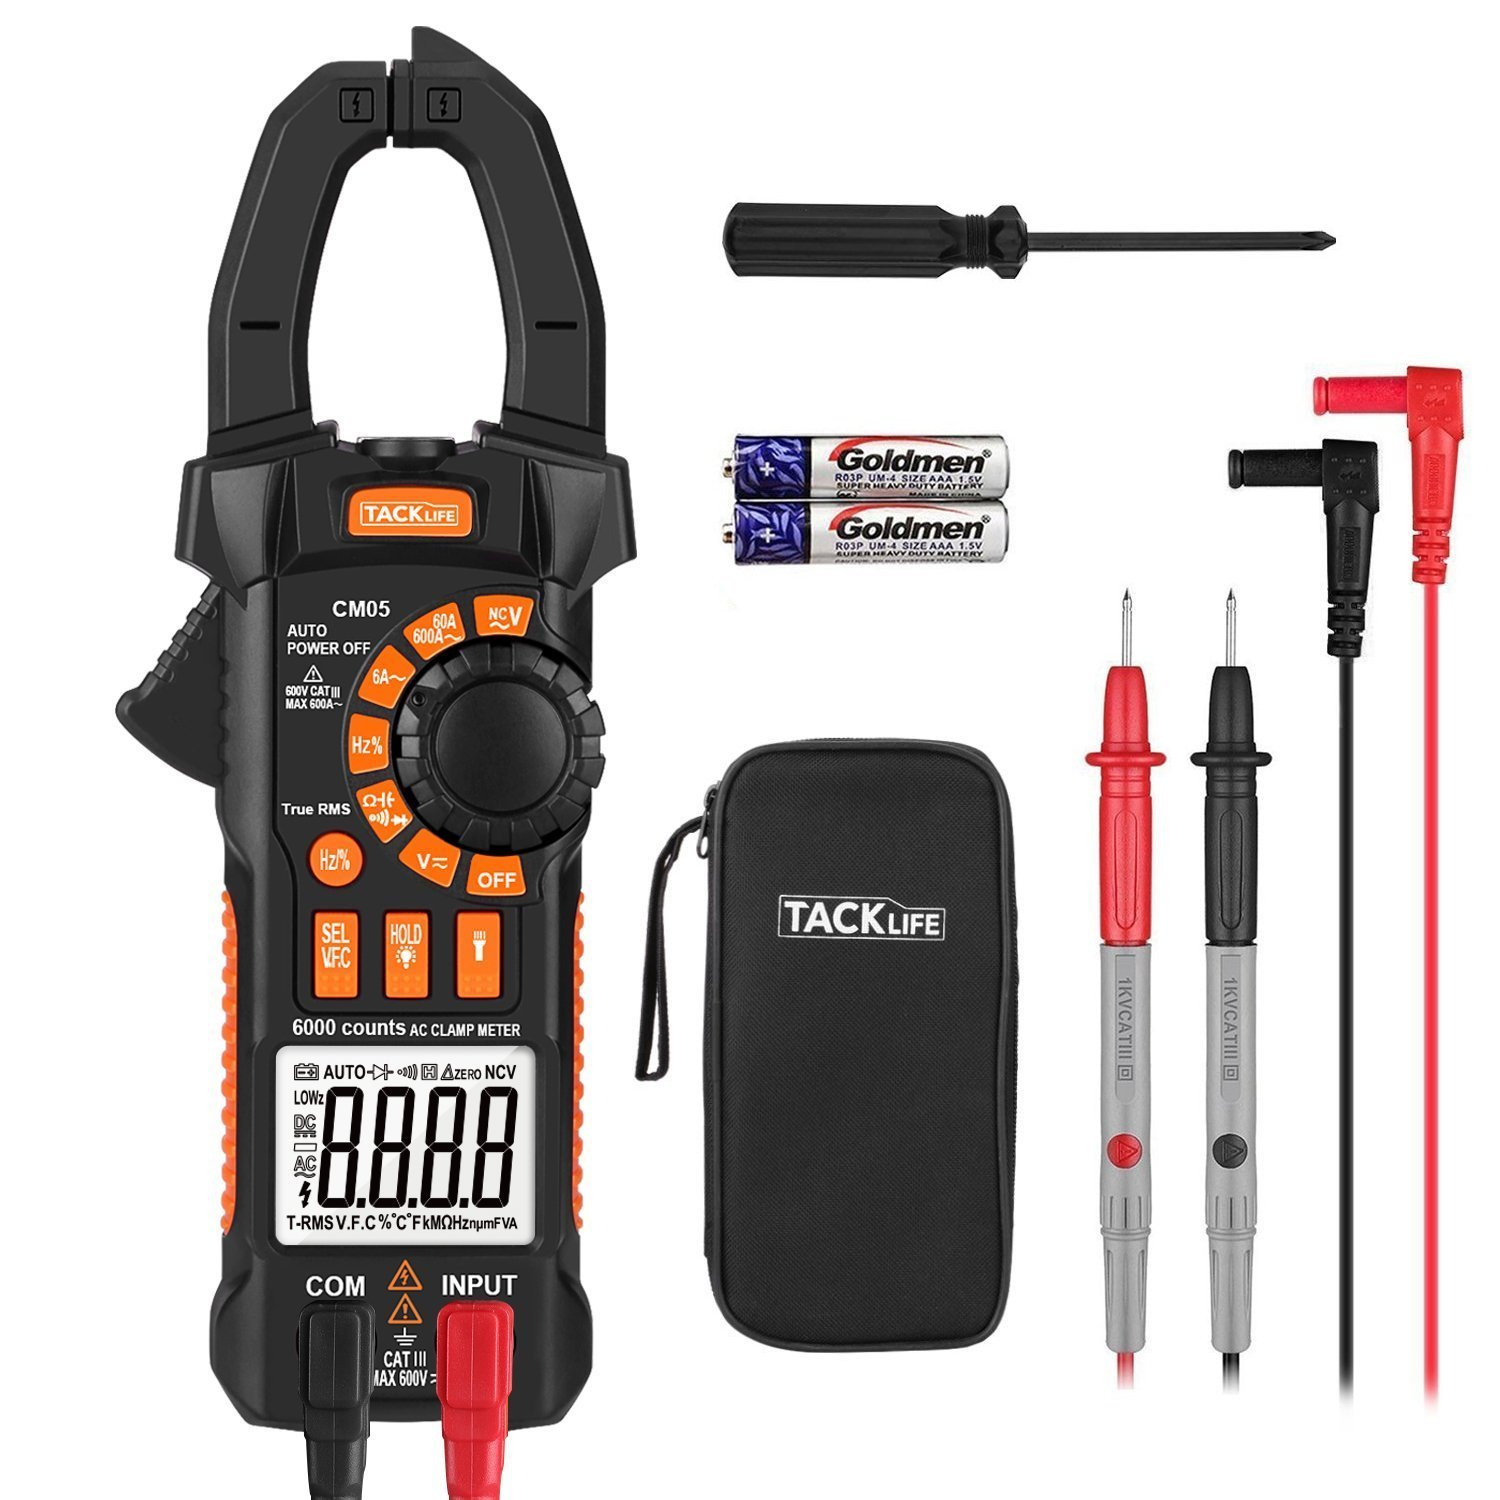 Clamp Meter, Tacklife CM05 Clamp Multimeters, 6000 Counts,AC/DC Voltage Tester, AC Current Detector, AC Signal Frequency, VFC, NCV, Resistor, Capacitor, Diode, Duty Cycle, Continuity Tester